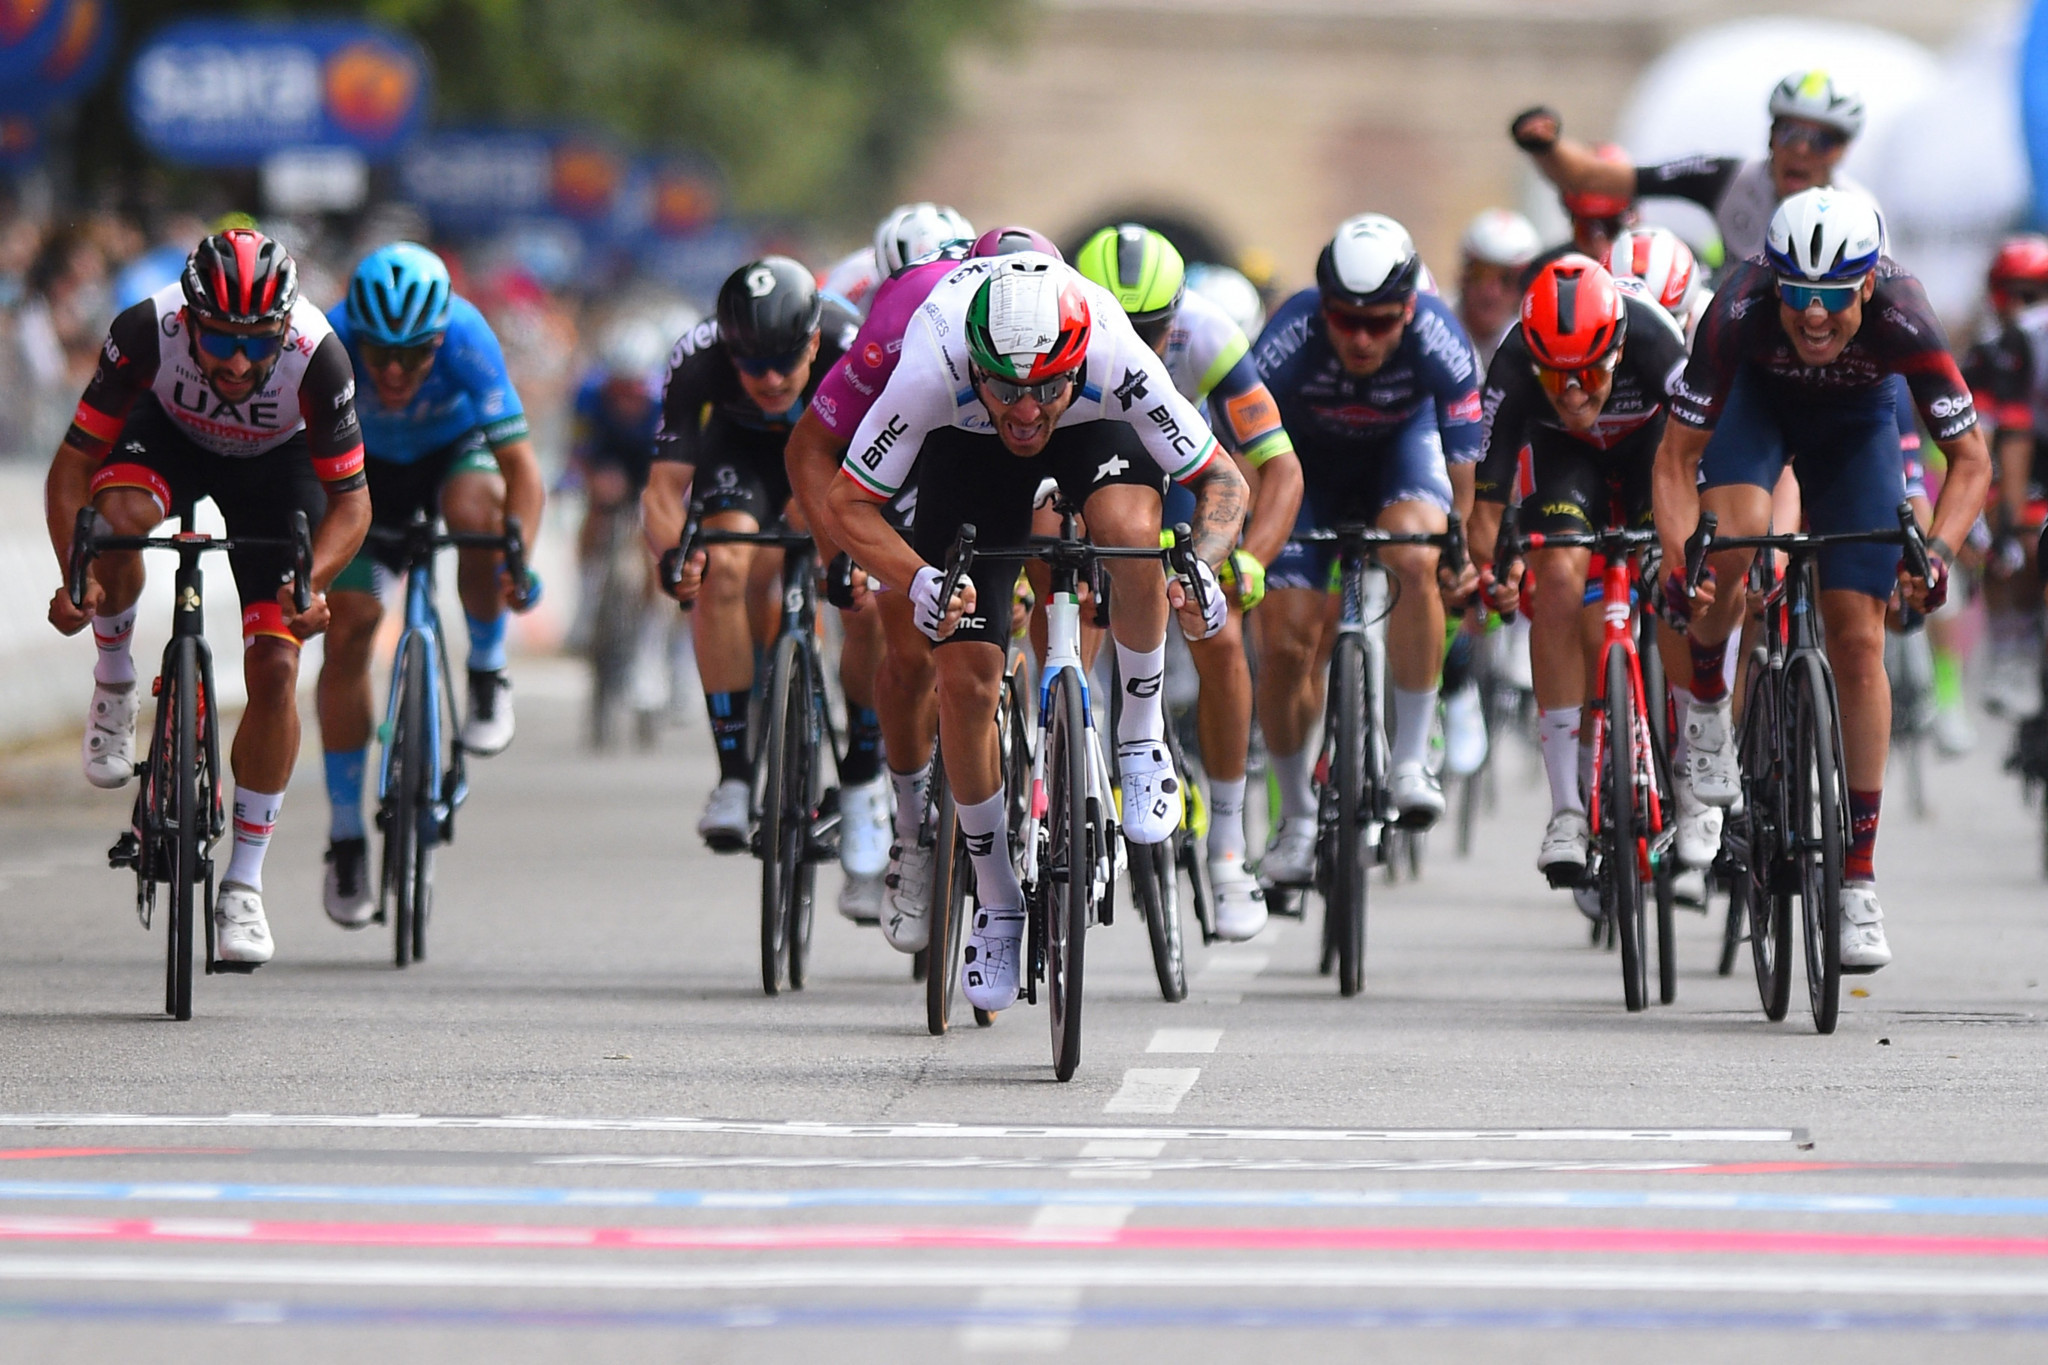 Nizzolo ends wait for victory at Giro d'Italia with stage 13 success